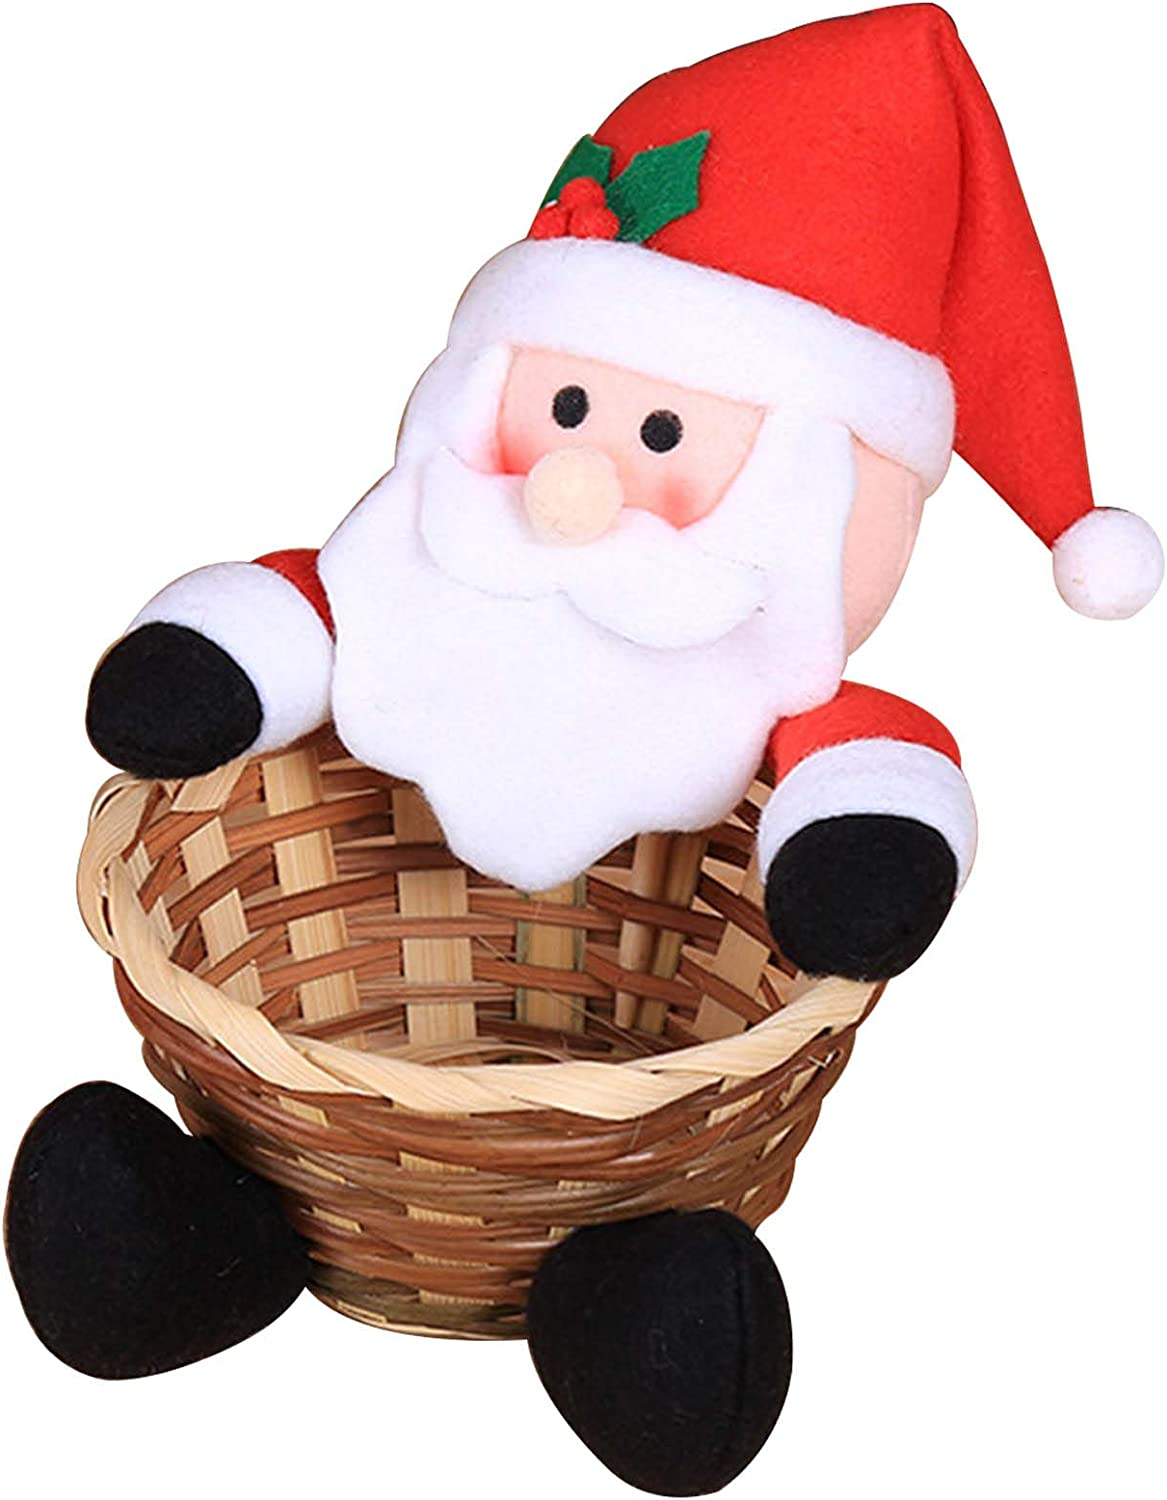 Cash Manufacturer regenerated product special price WMTFCBE Christmas Candy Storage Bamboo Basket Baskets